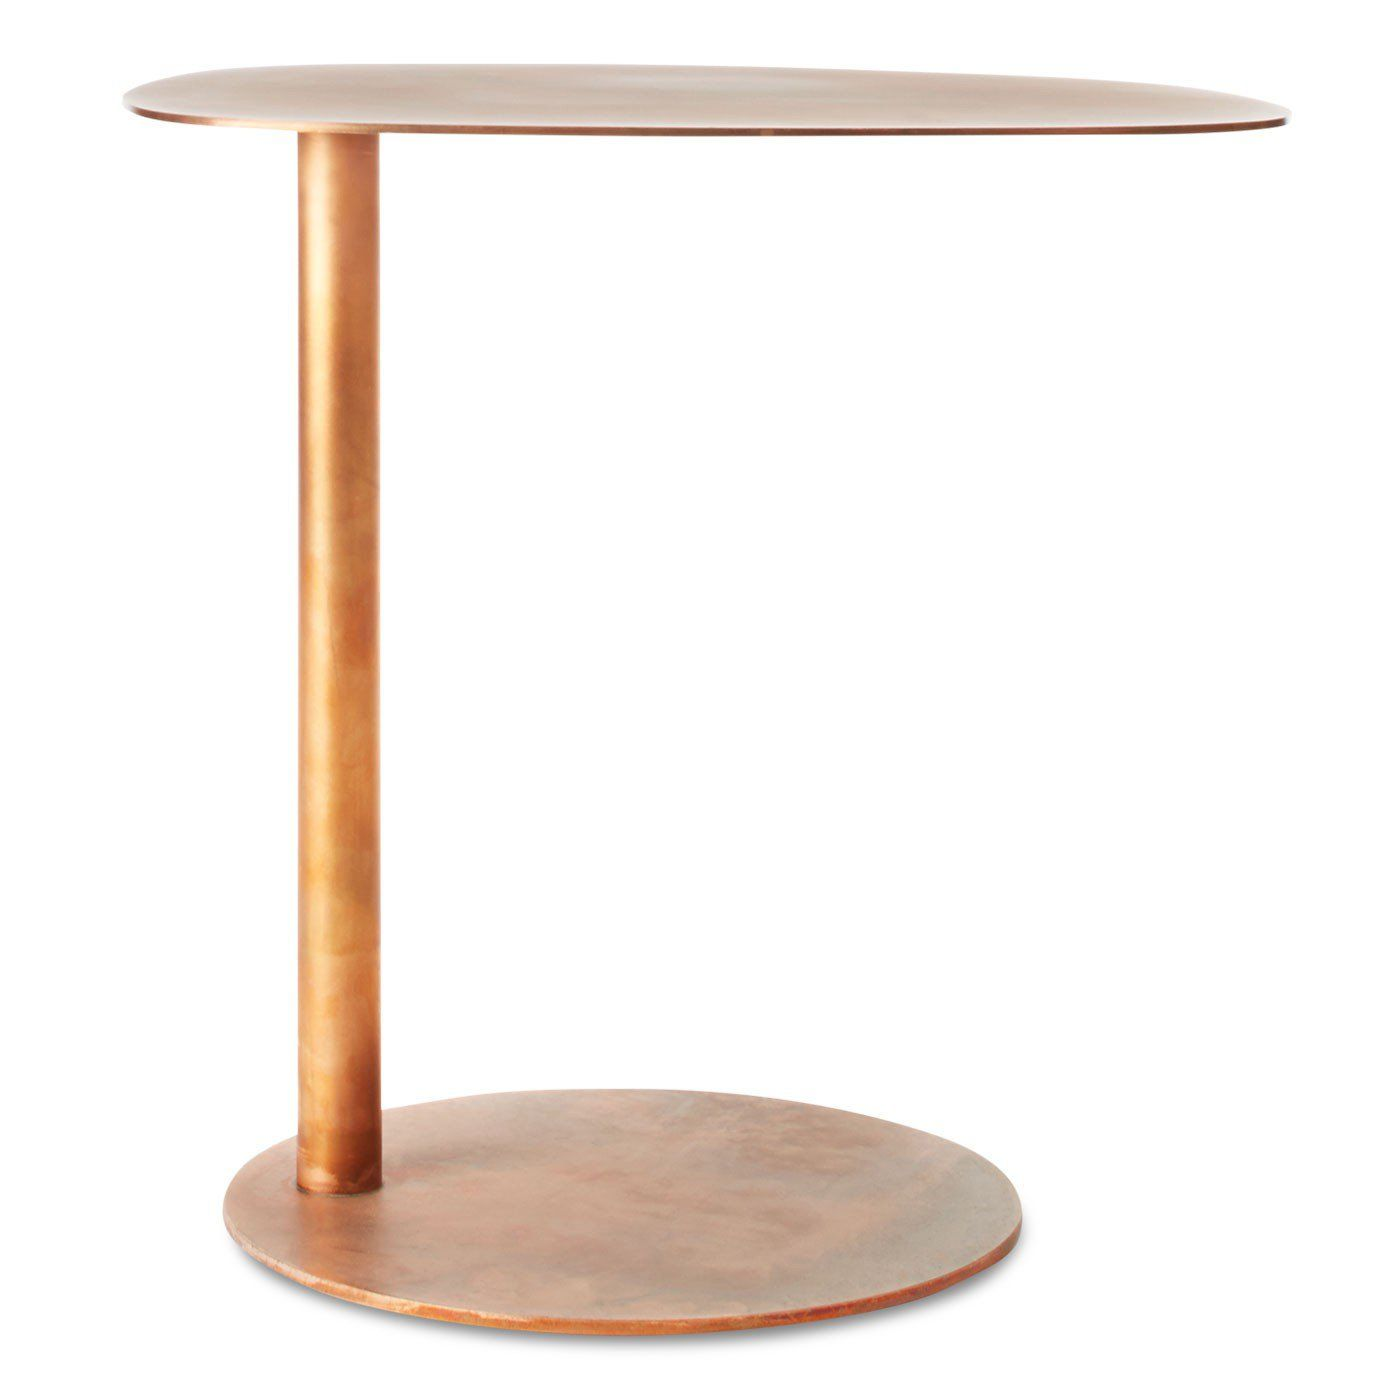 Modern wood side table  Swole Small Table  FTS  Pinterest  Small tables Modern and Corner